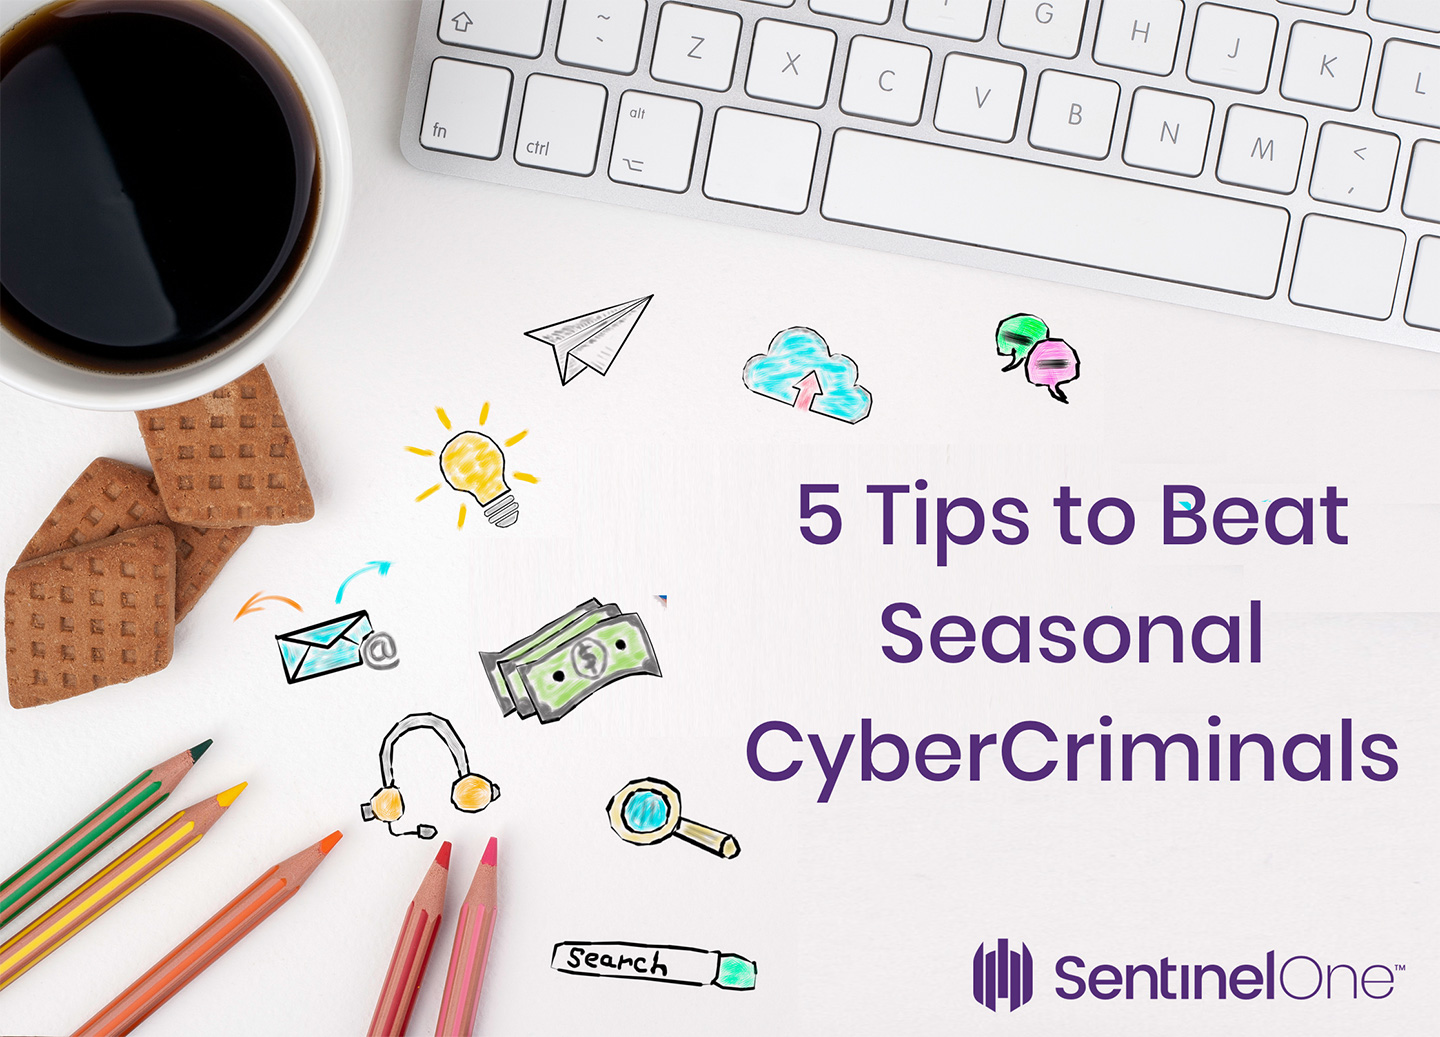 An overview image SentinelOne created of a desk with colorful pencils, dribbles, a coffee mug, and a Mac's keyboard, with the title 5 tips to beat seasonal cybercriminals on top.